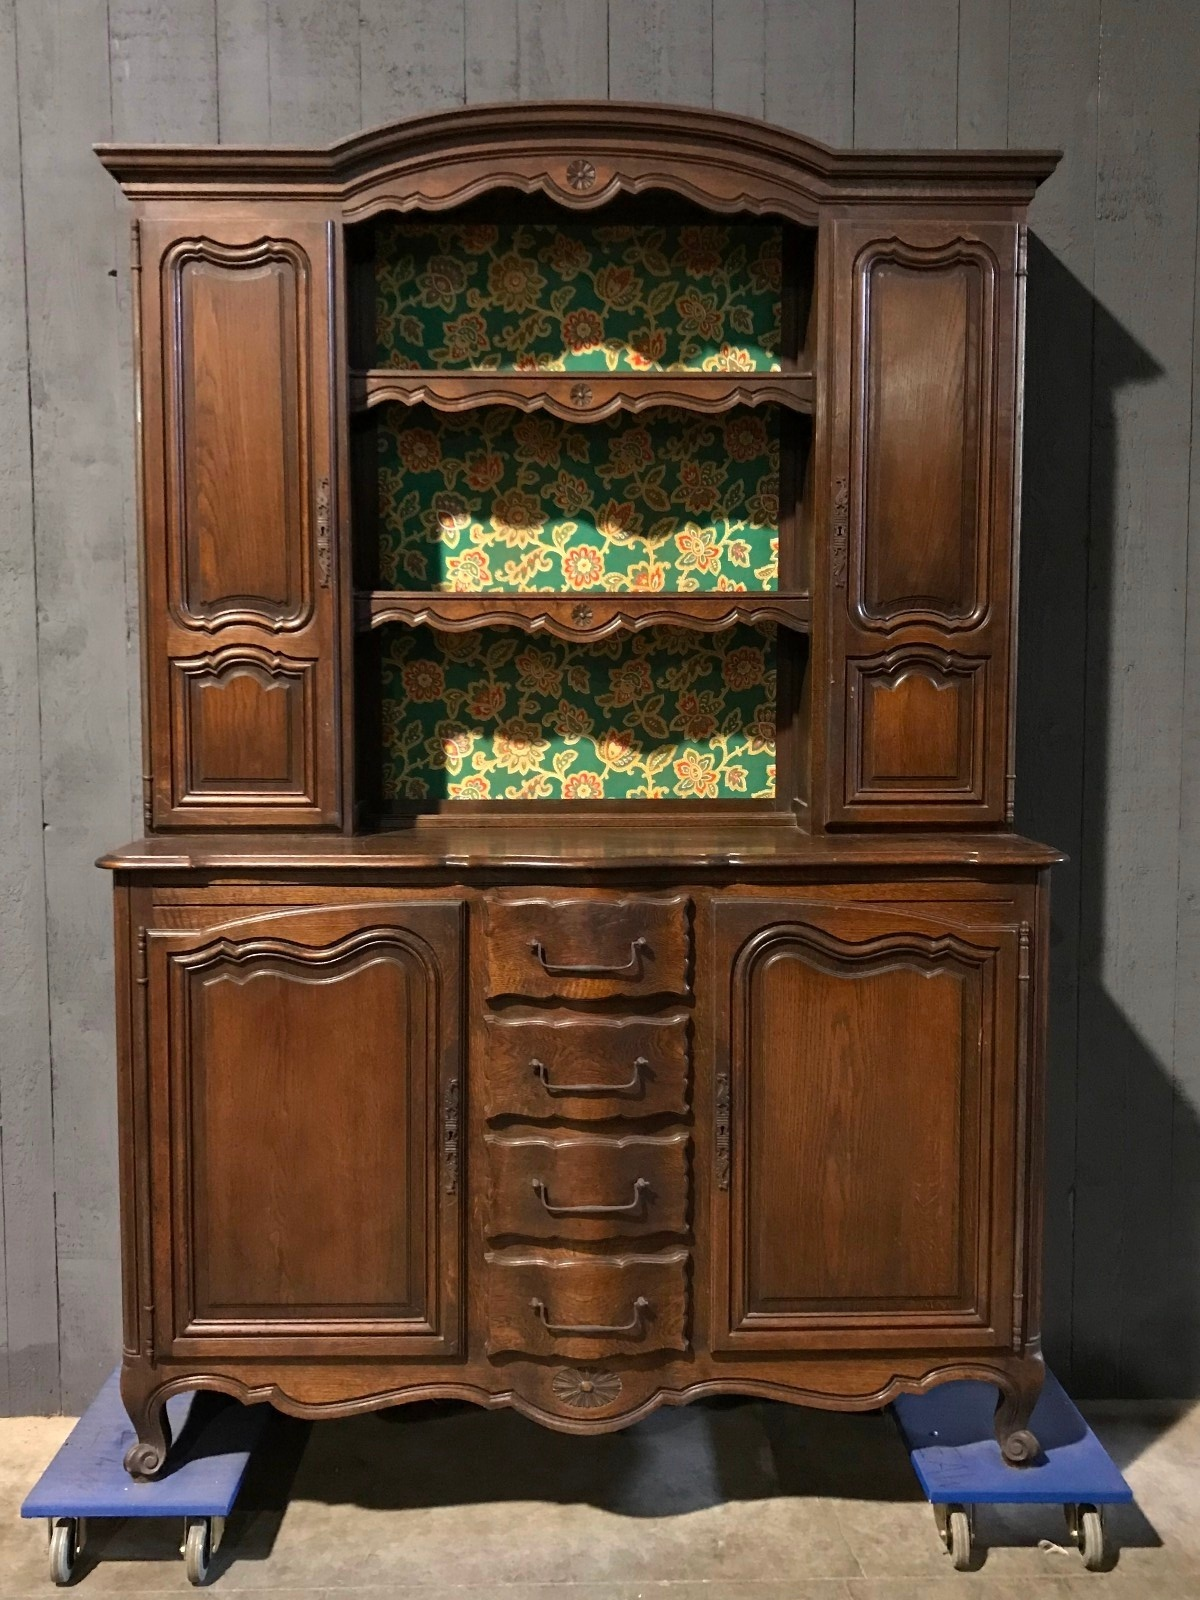 Louis XV Antique cupboard - Antiques & Furnitures - Recent Added Items -  European ANTIQUES & DECORATIVE - Louis XV Antique Cupboard - Antiques & Furnitures - Recent Added